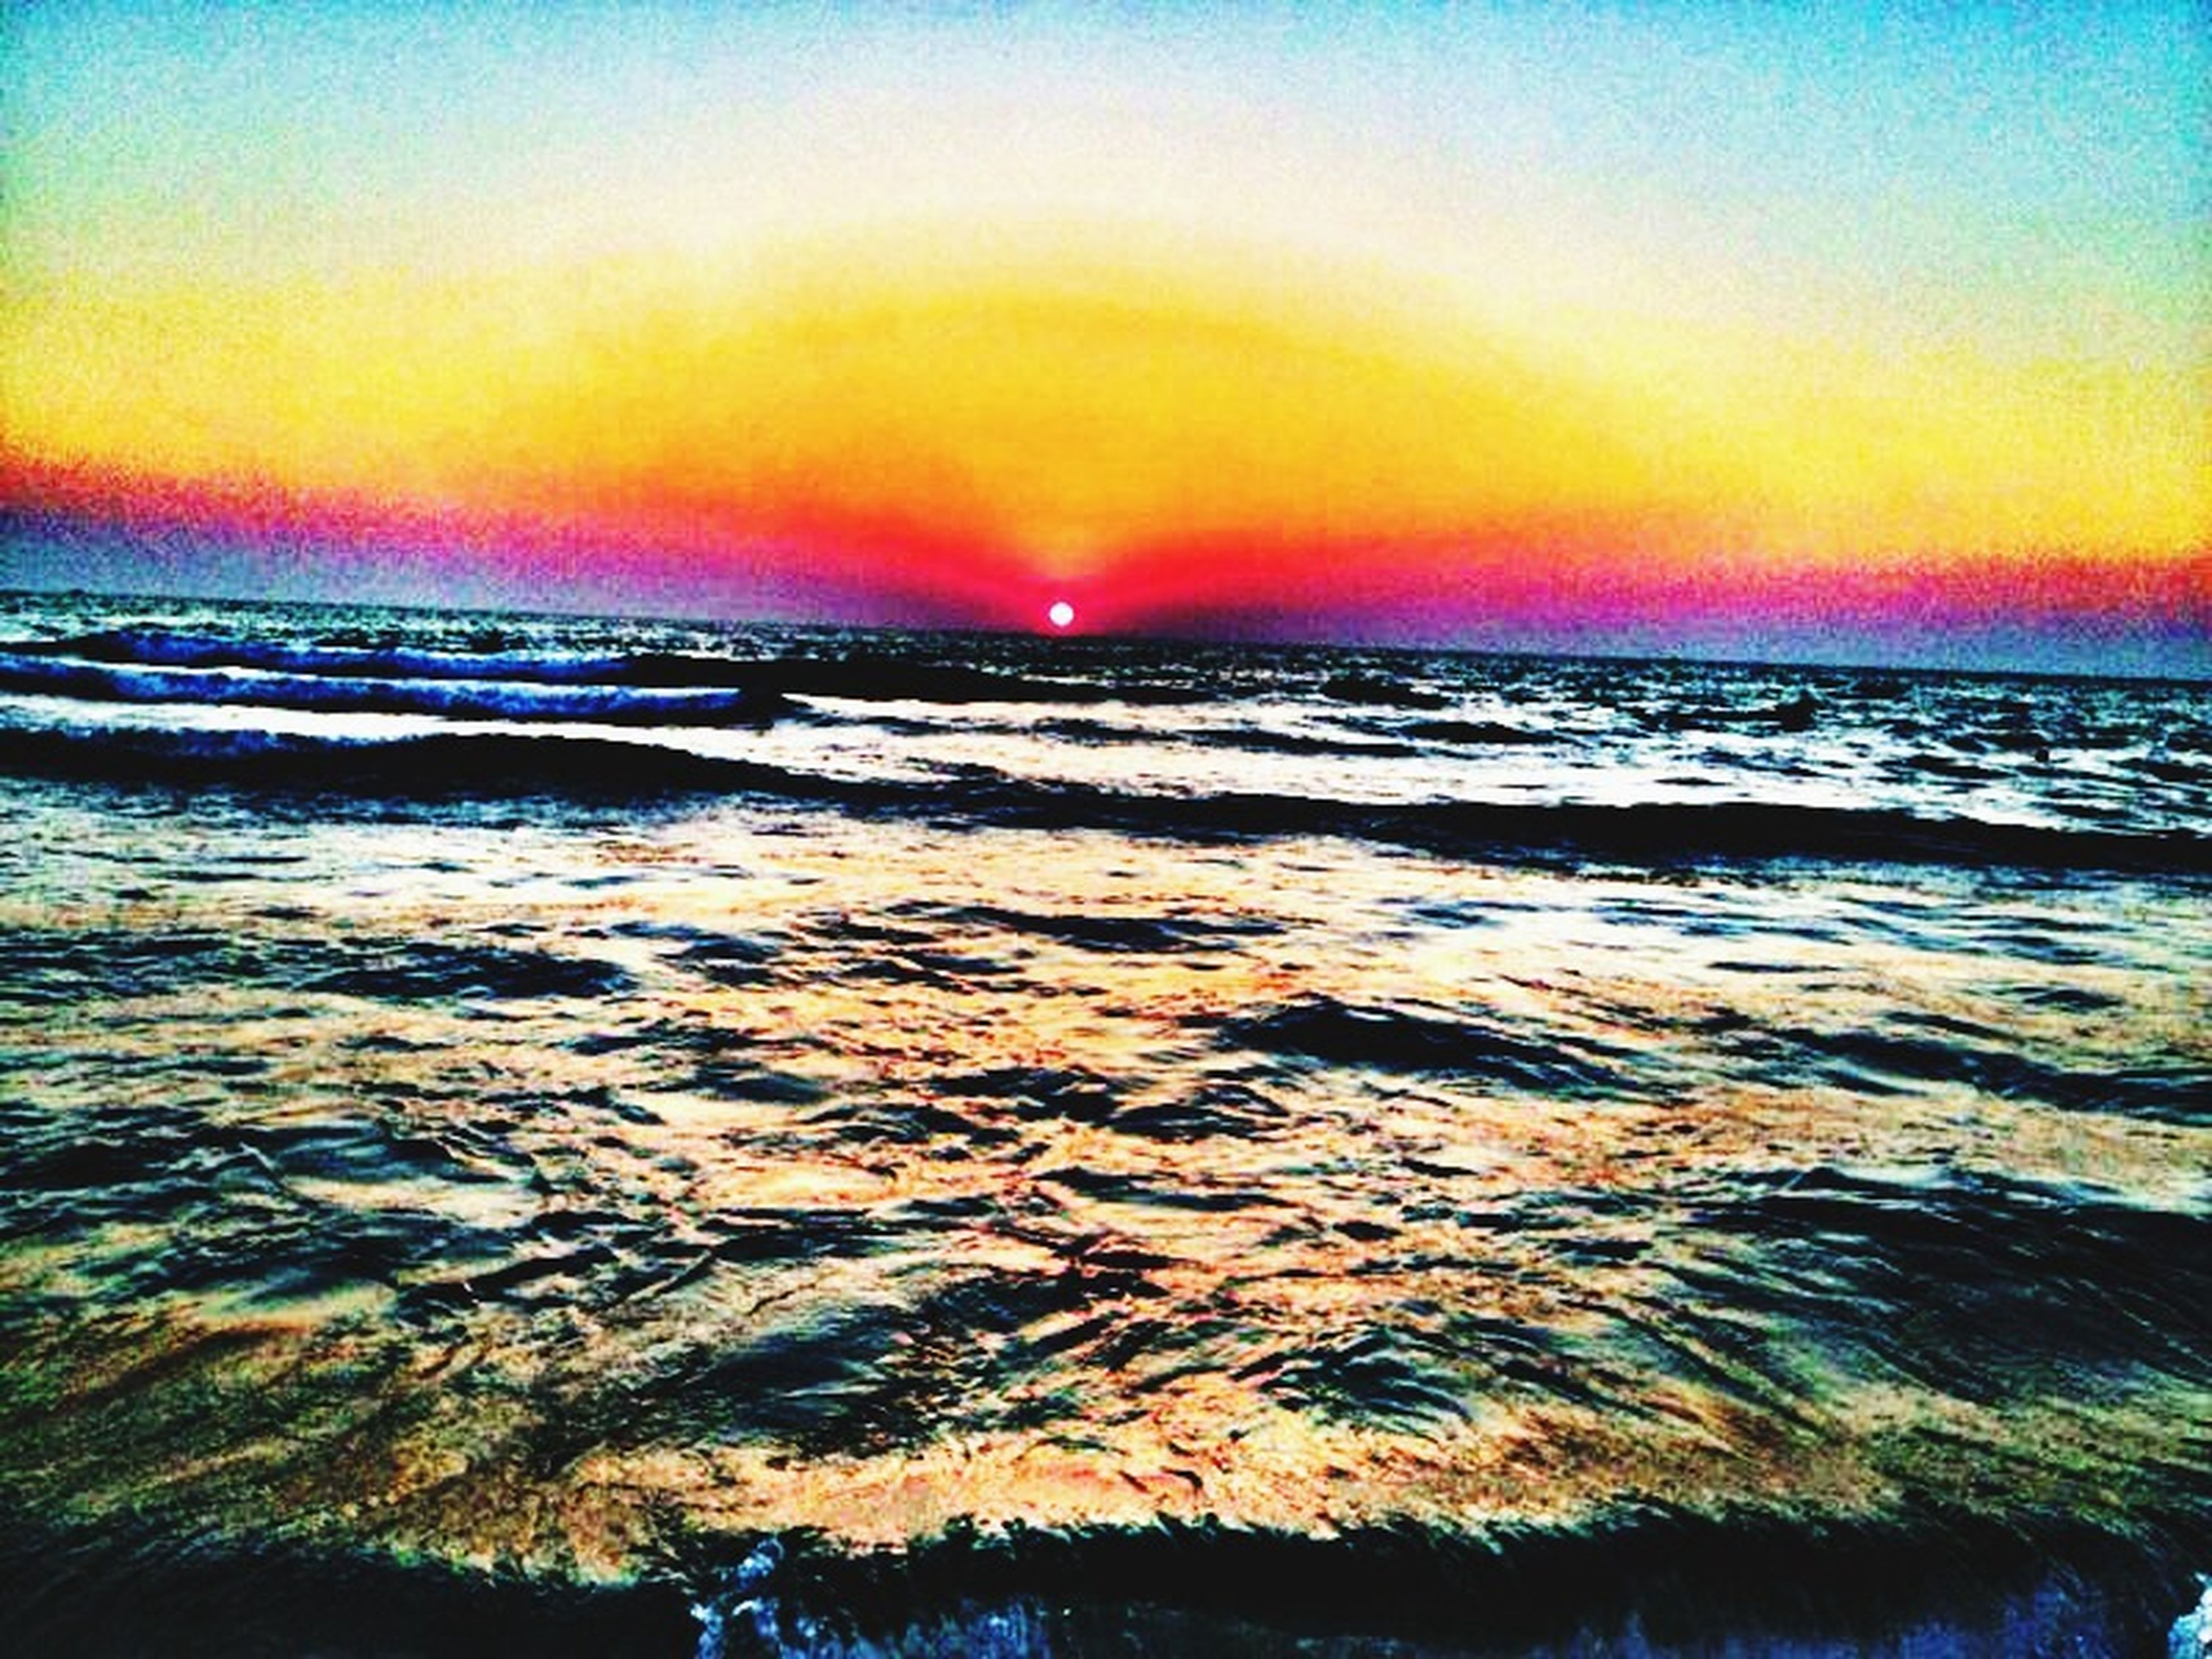 sunset, water, orange color, sea, scenics, beauty in nature, tranquil scene, tranquility, sky, horizon over water, idyllic, nature, wave, beach, sun, reflection, waterfront, outdoors, motion, non-urban scene